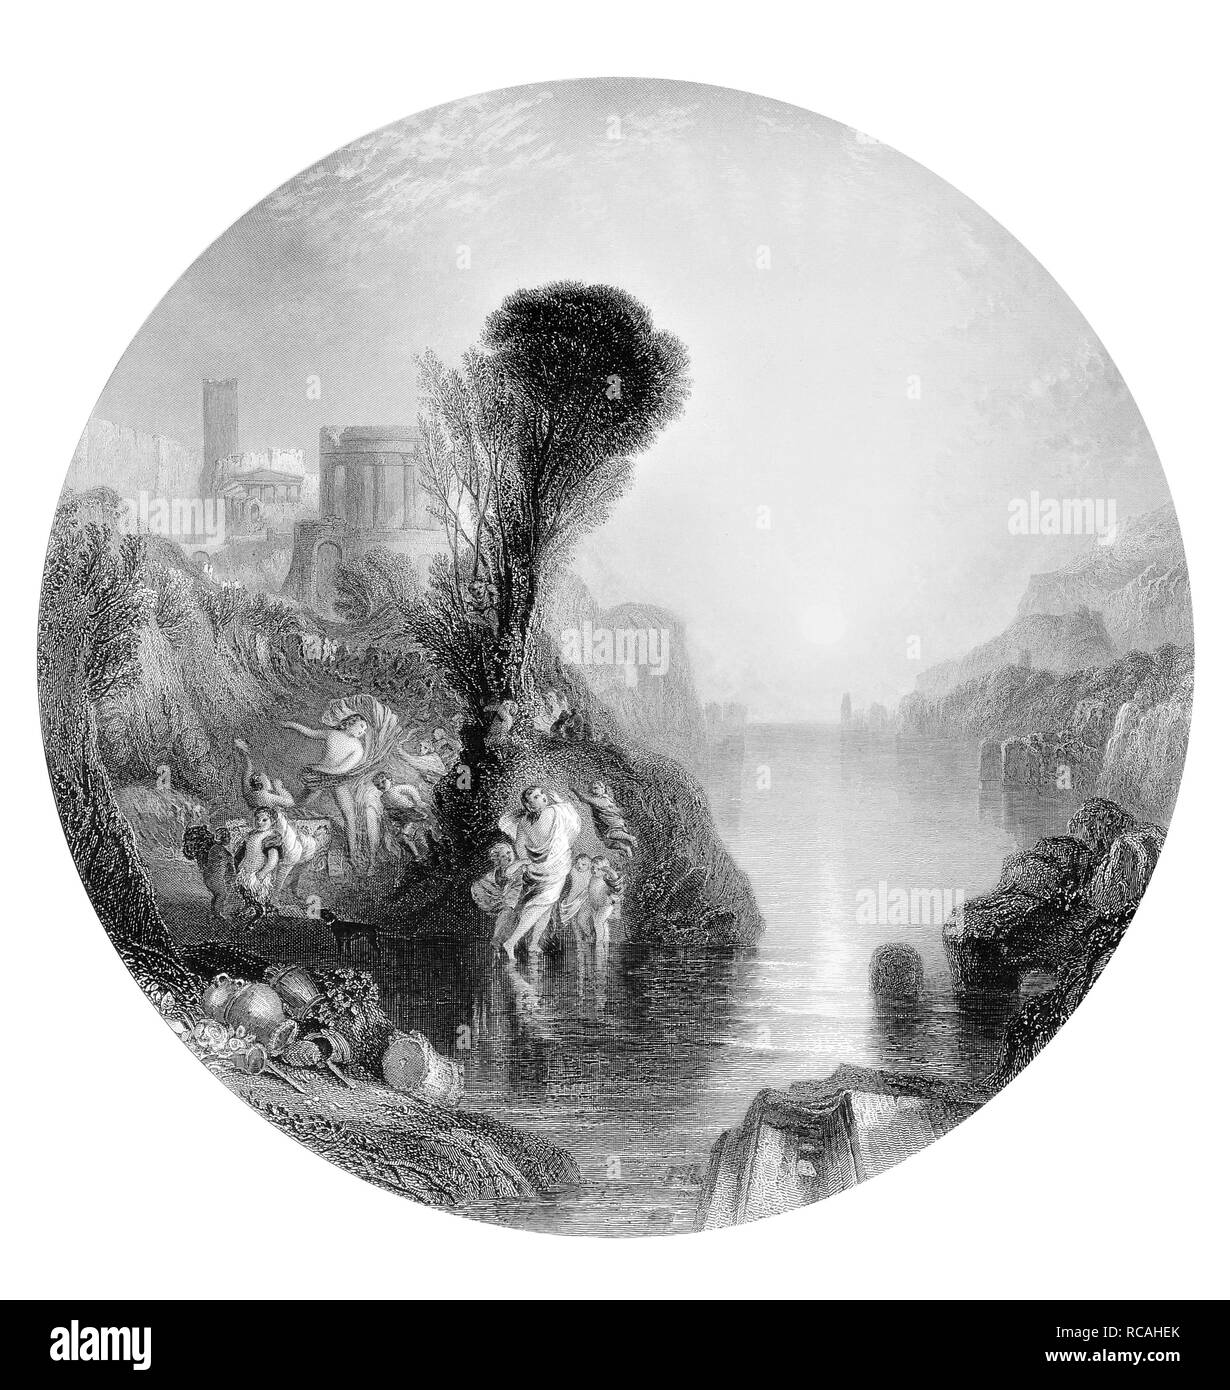 J.M.W Turner Bacchus and Ariadne engraved by C.Cousen - Stock Image